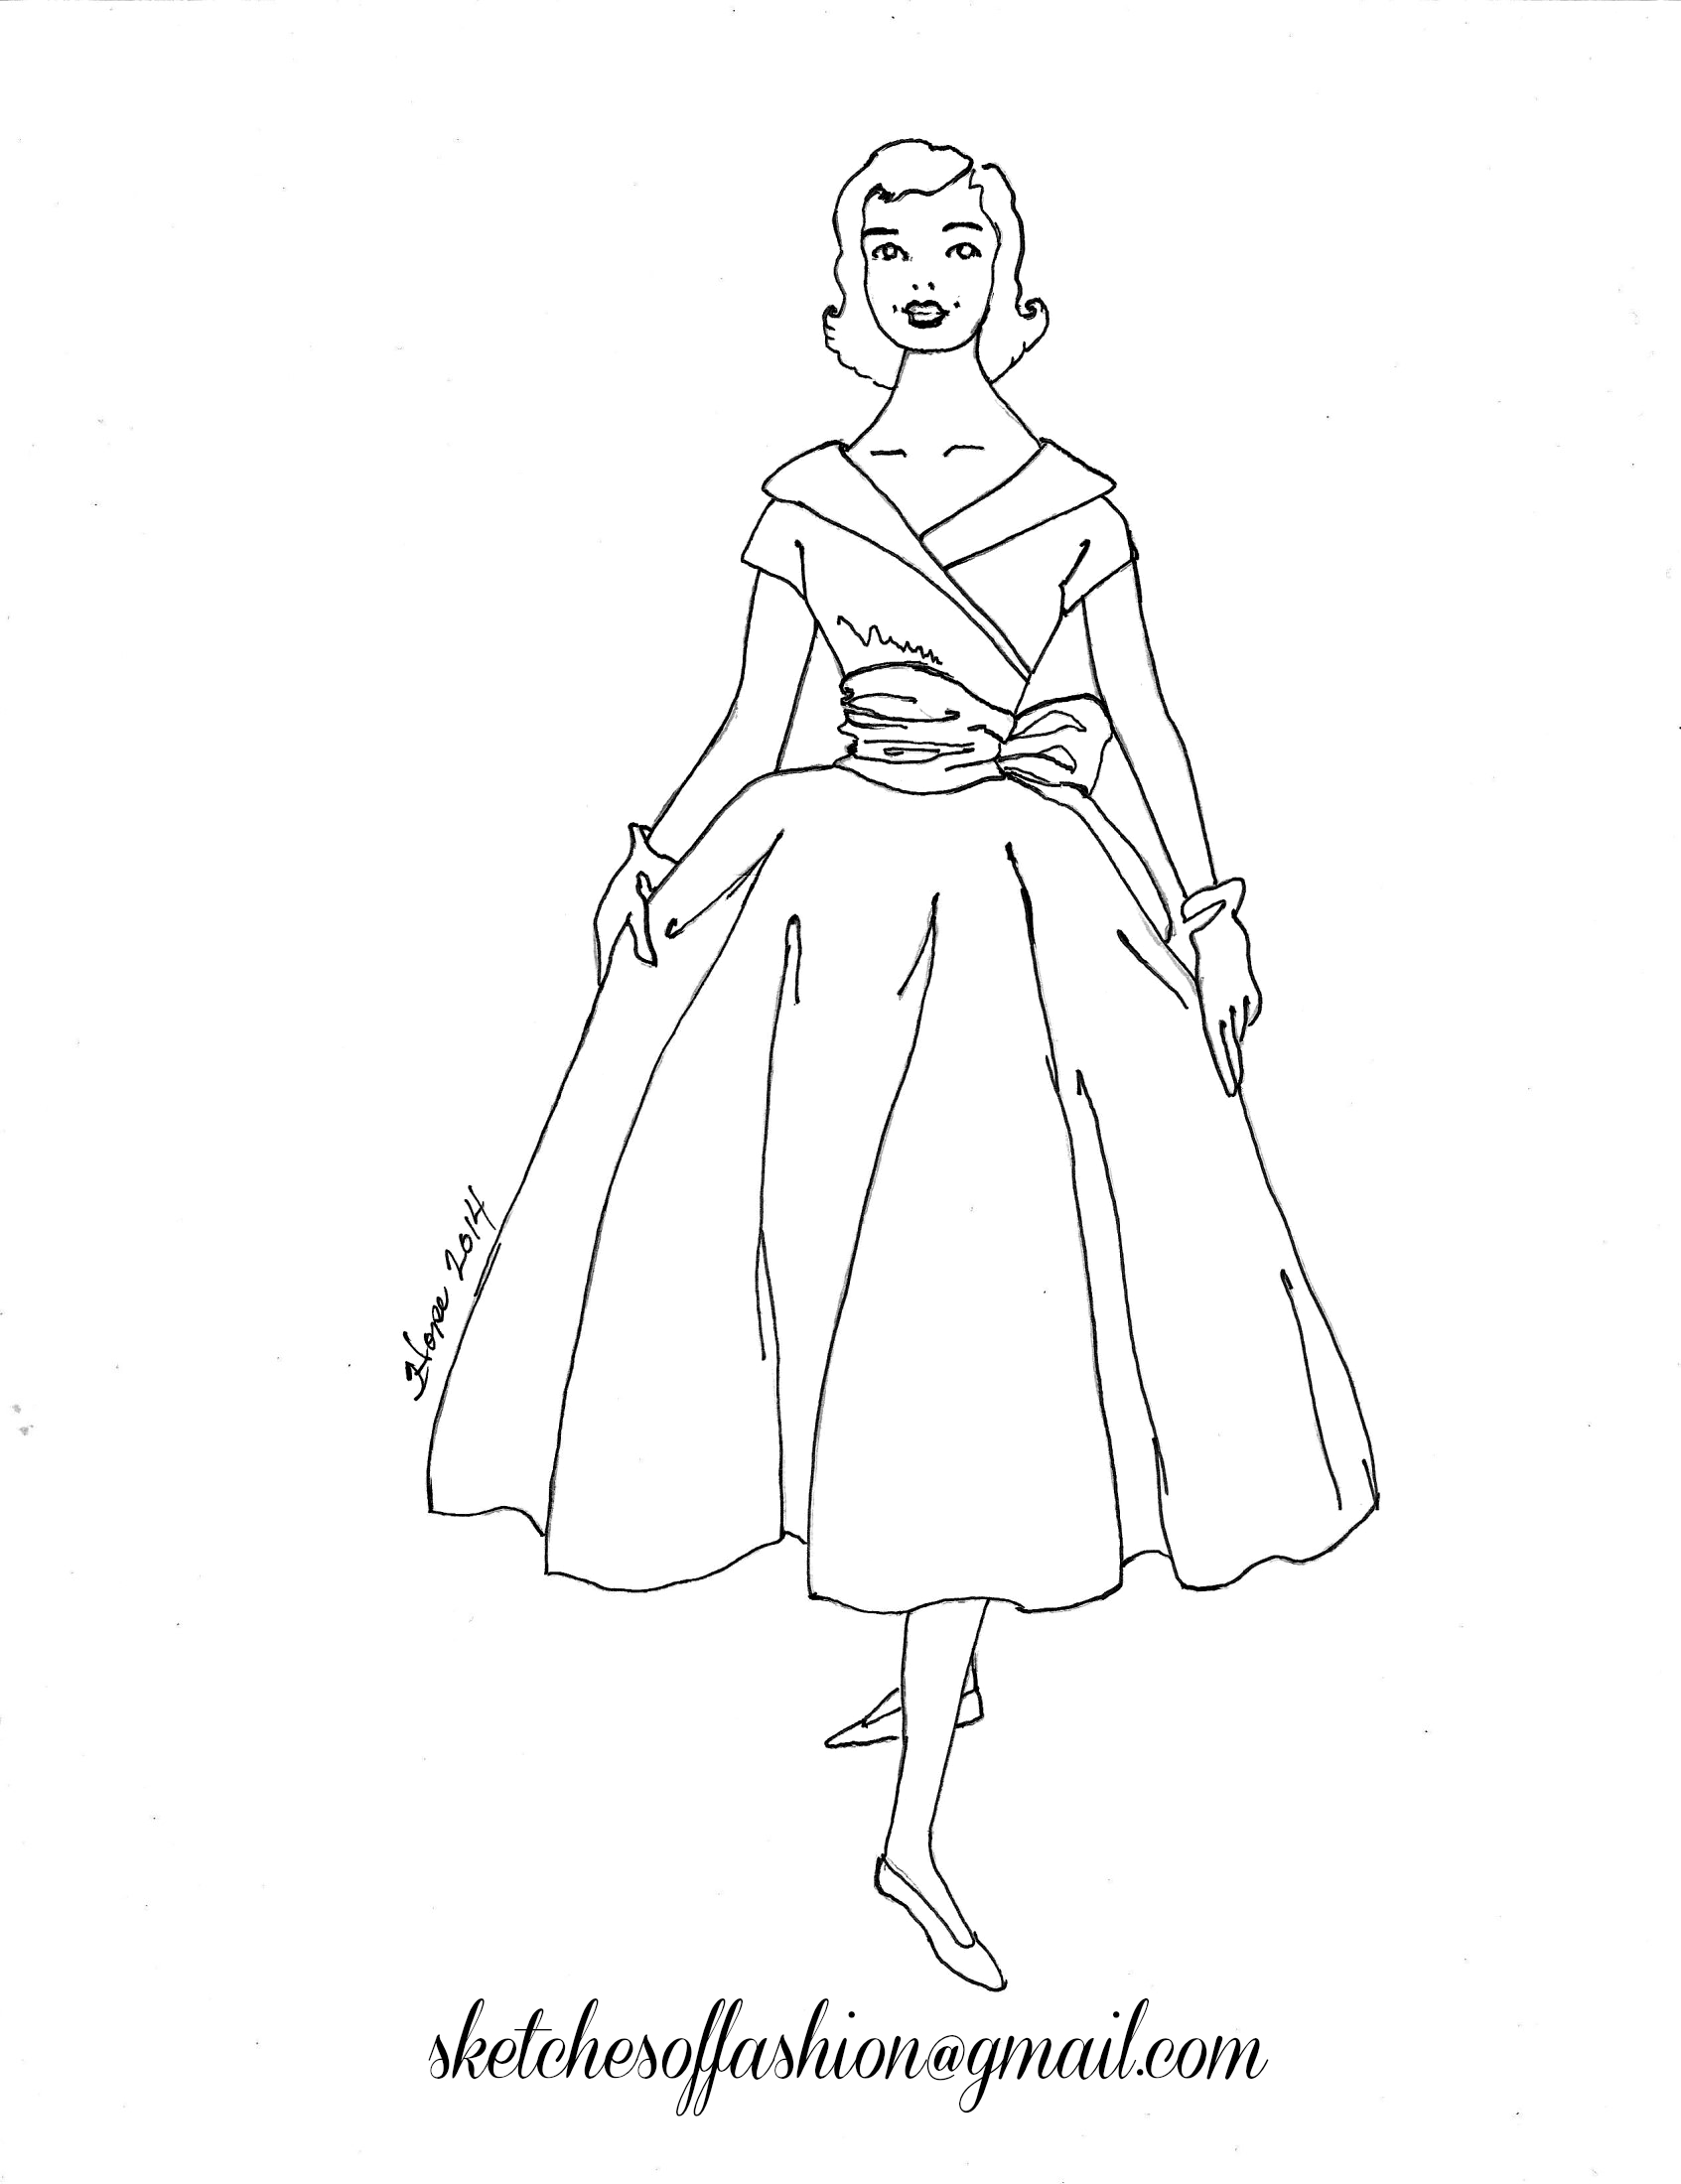 Fashion Coloring | Fashion coloring pages | Colorful fashion ...